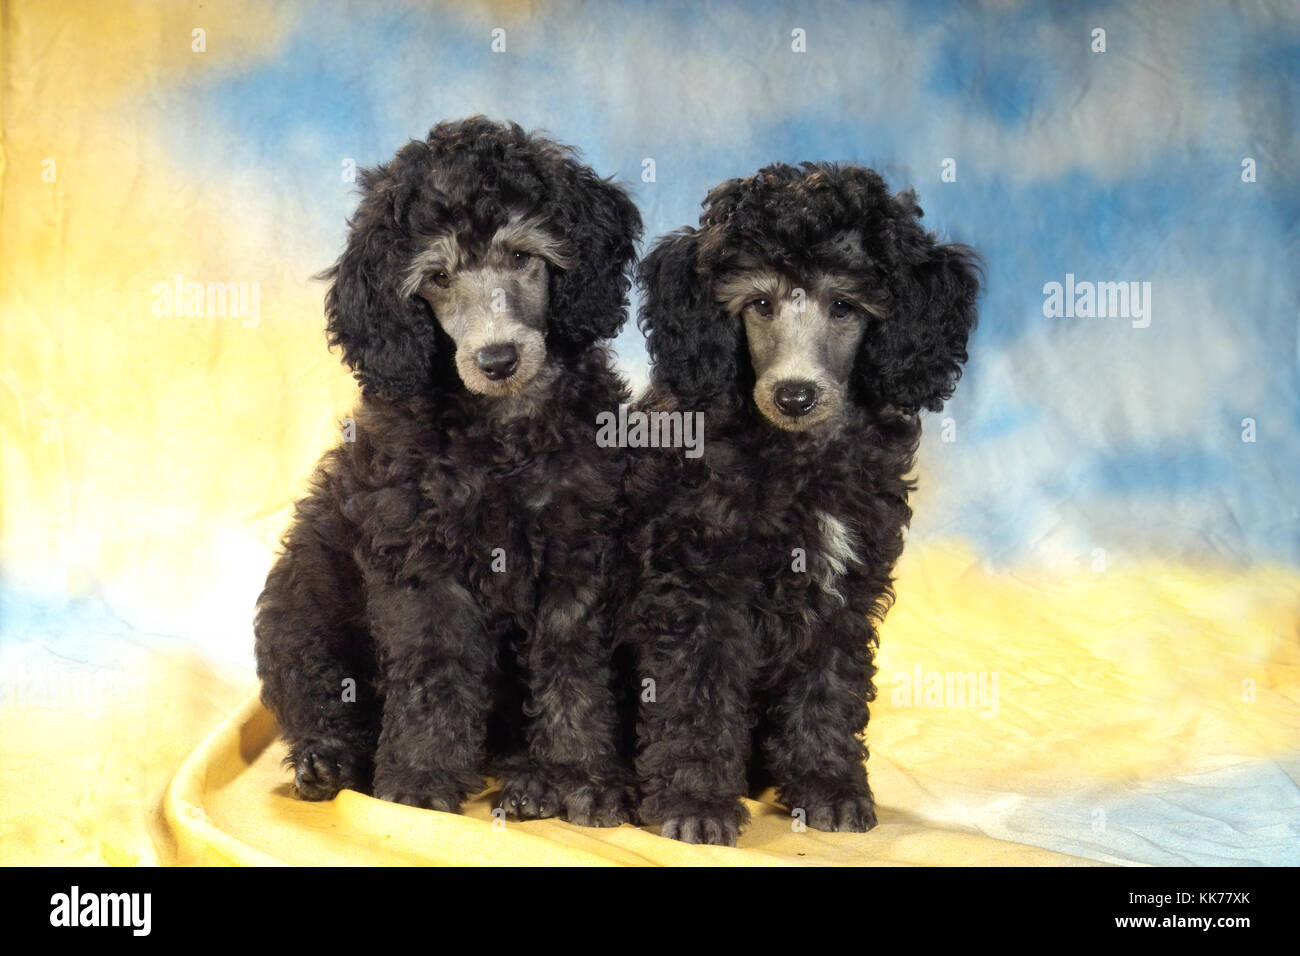 two young poodles - Stock Image